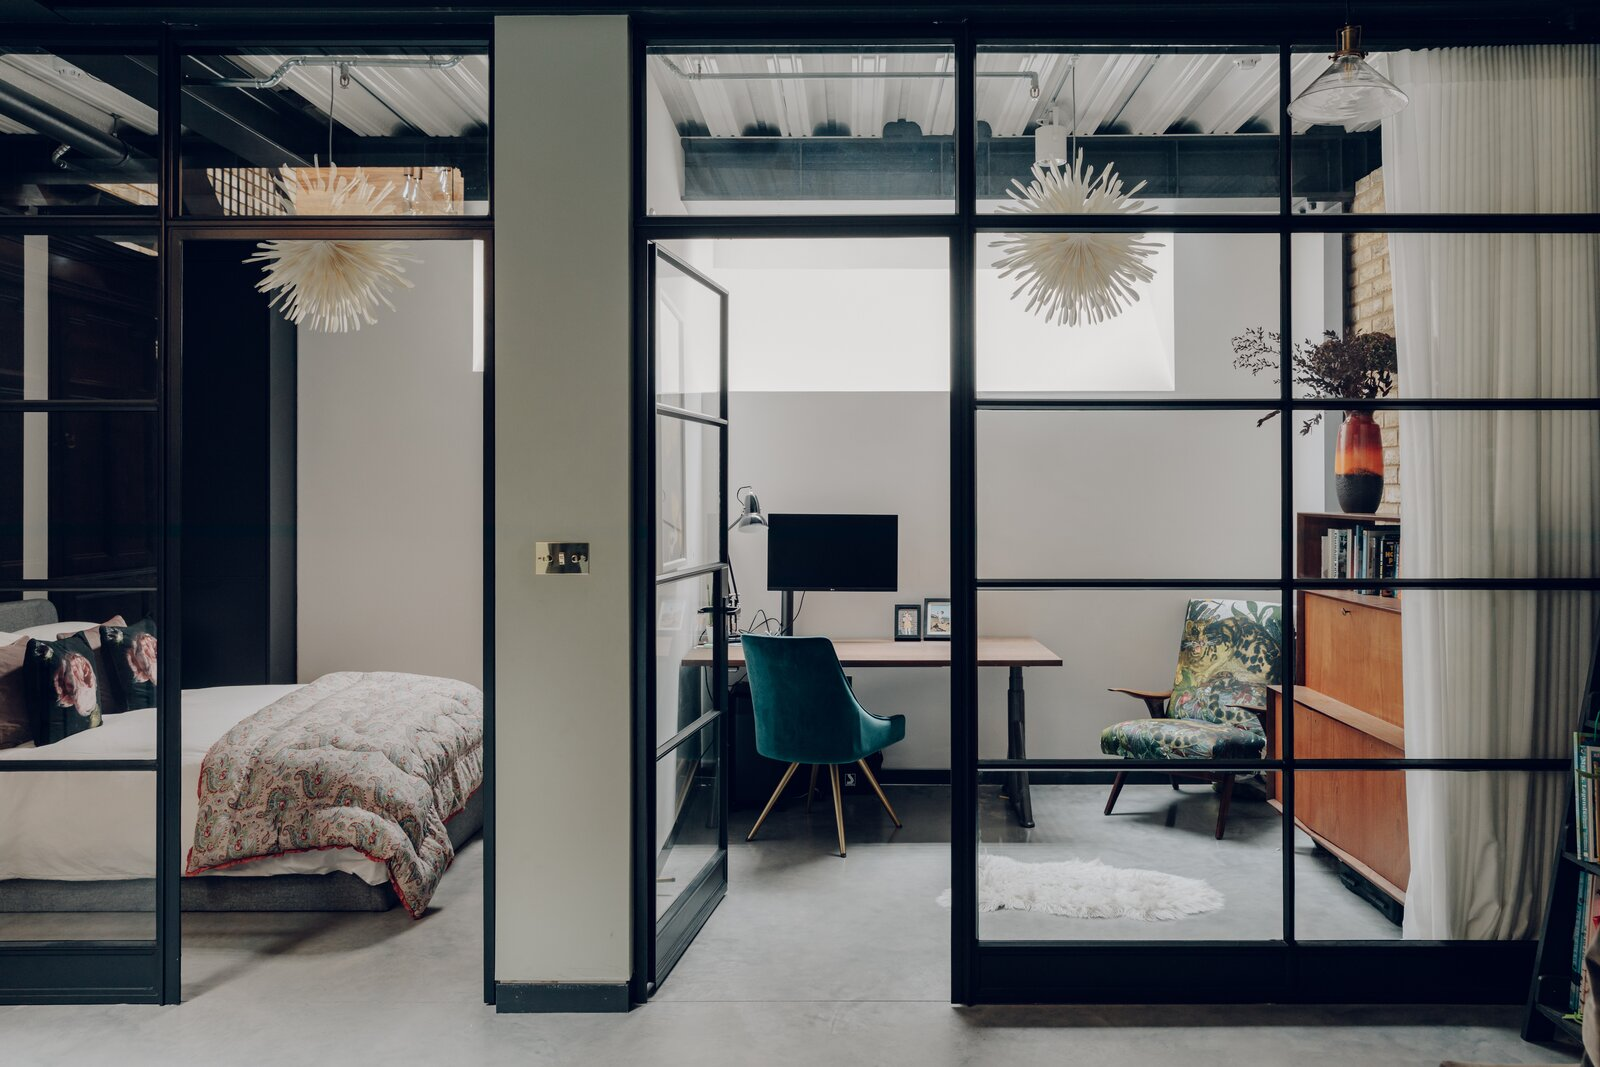 Steel-and-glass walls enclose two other rooms, now set up as a guest room and office.  Photo 7 of 13 in An Enchanting, Reimagined Coach House in London Asks £2M